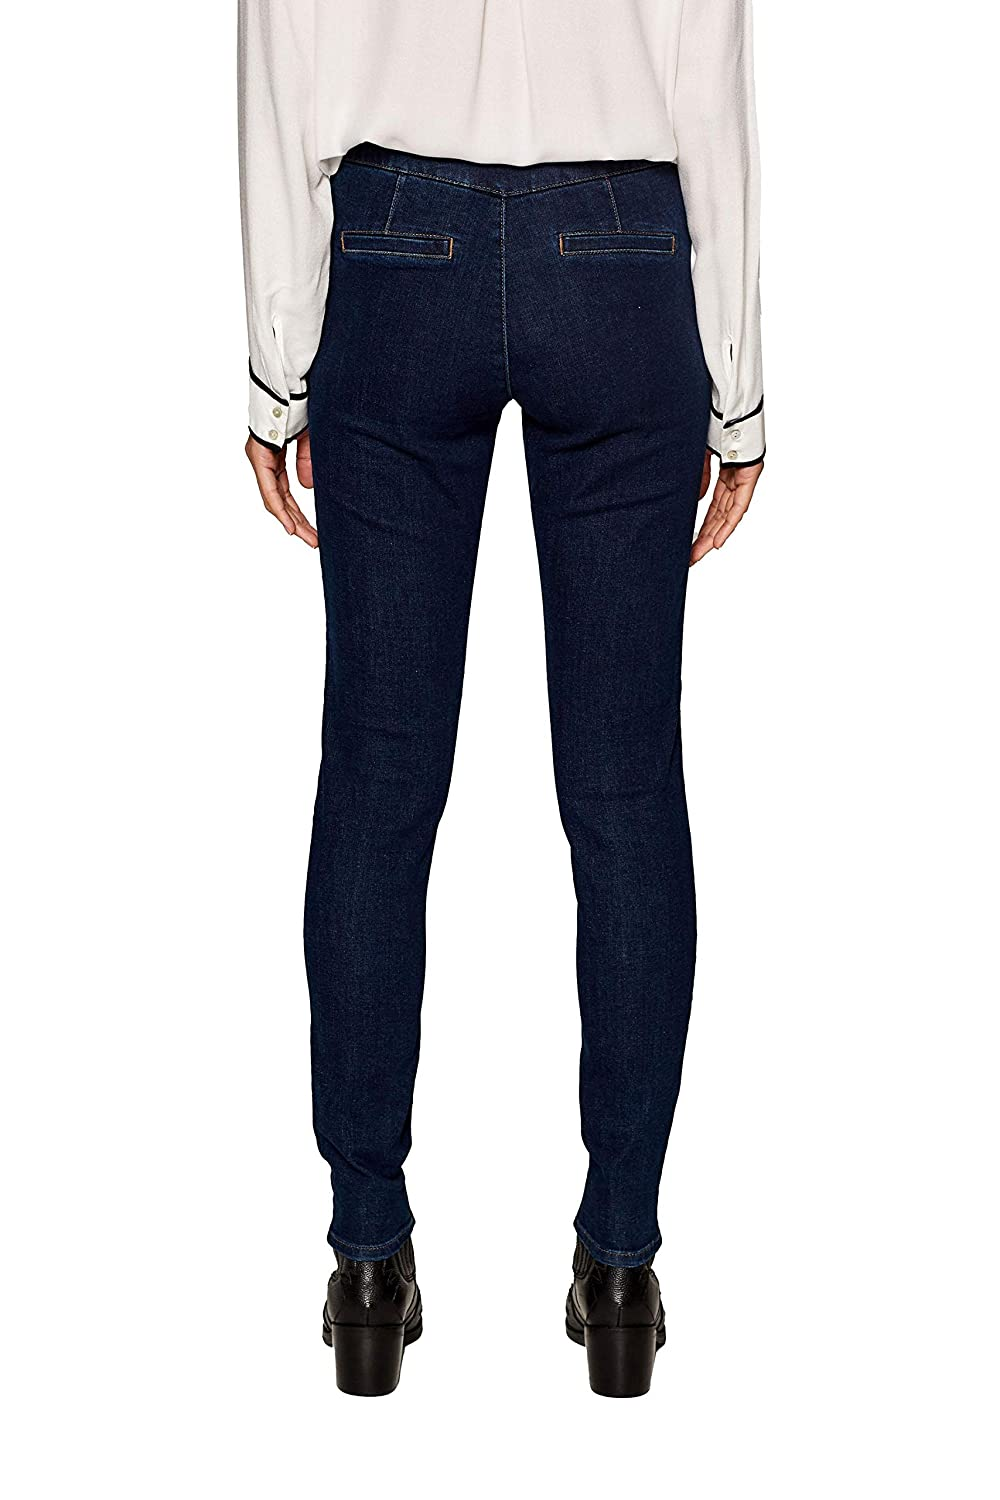 edc by Esprit Jeans Skinny Donna